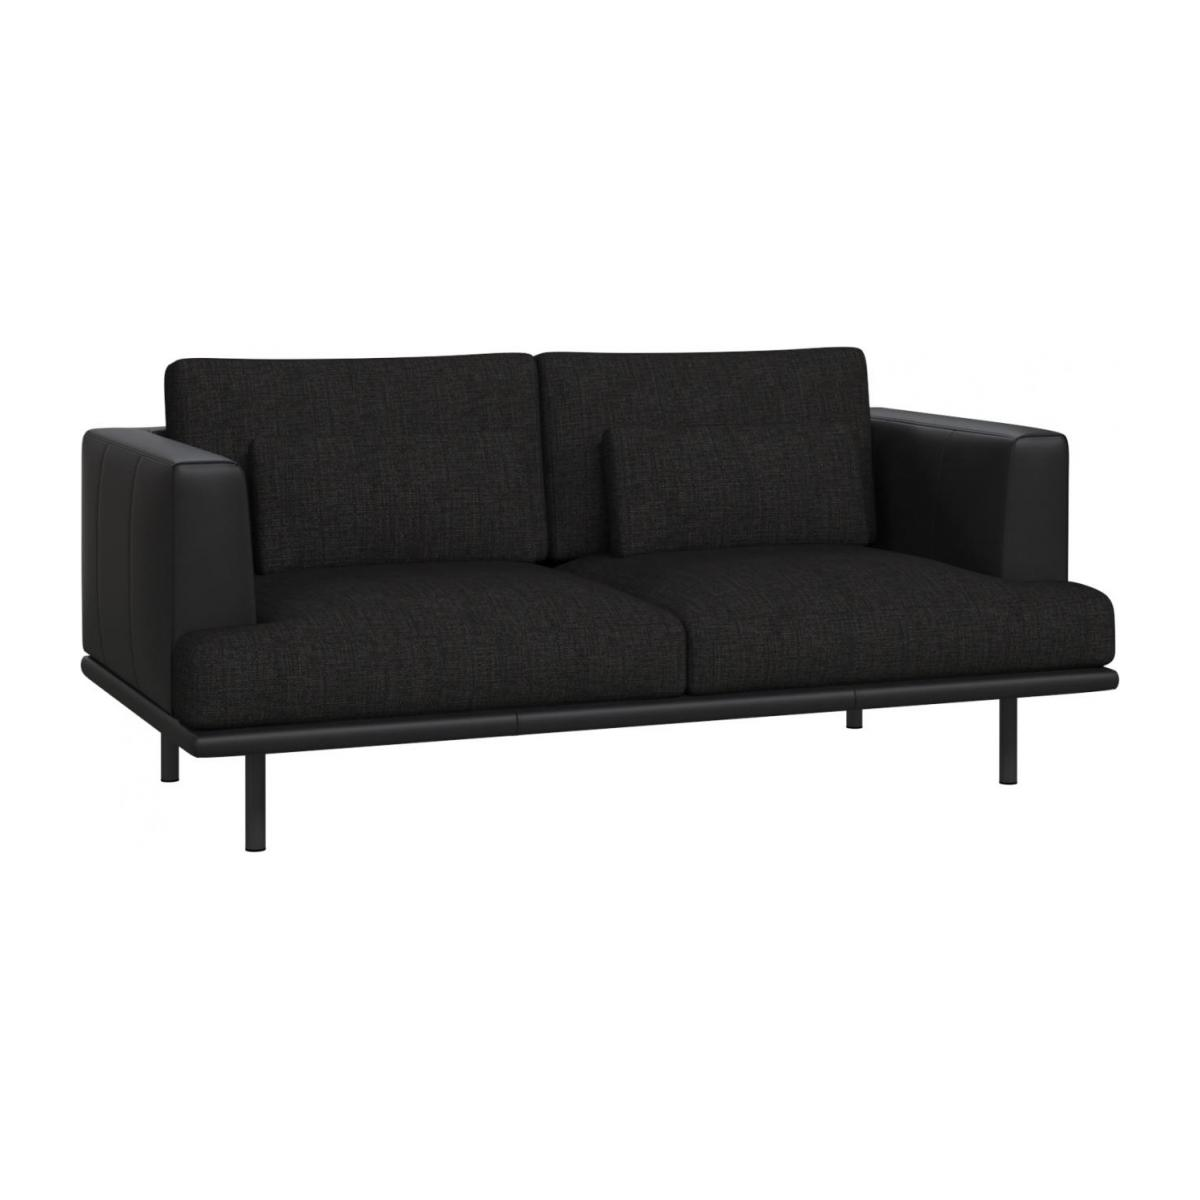 2-seter sofa Ancio sort med base og vanger i sort skinn n°1